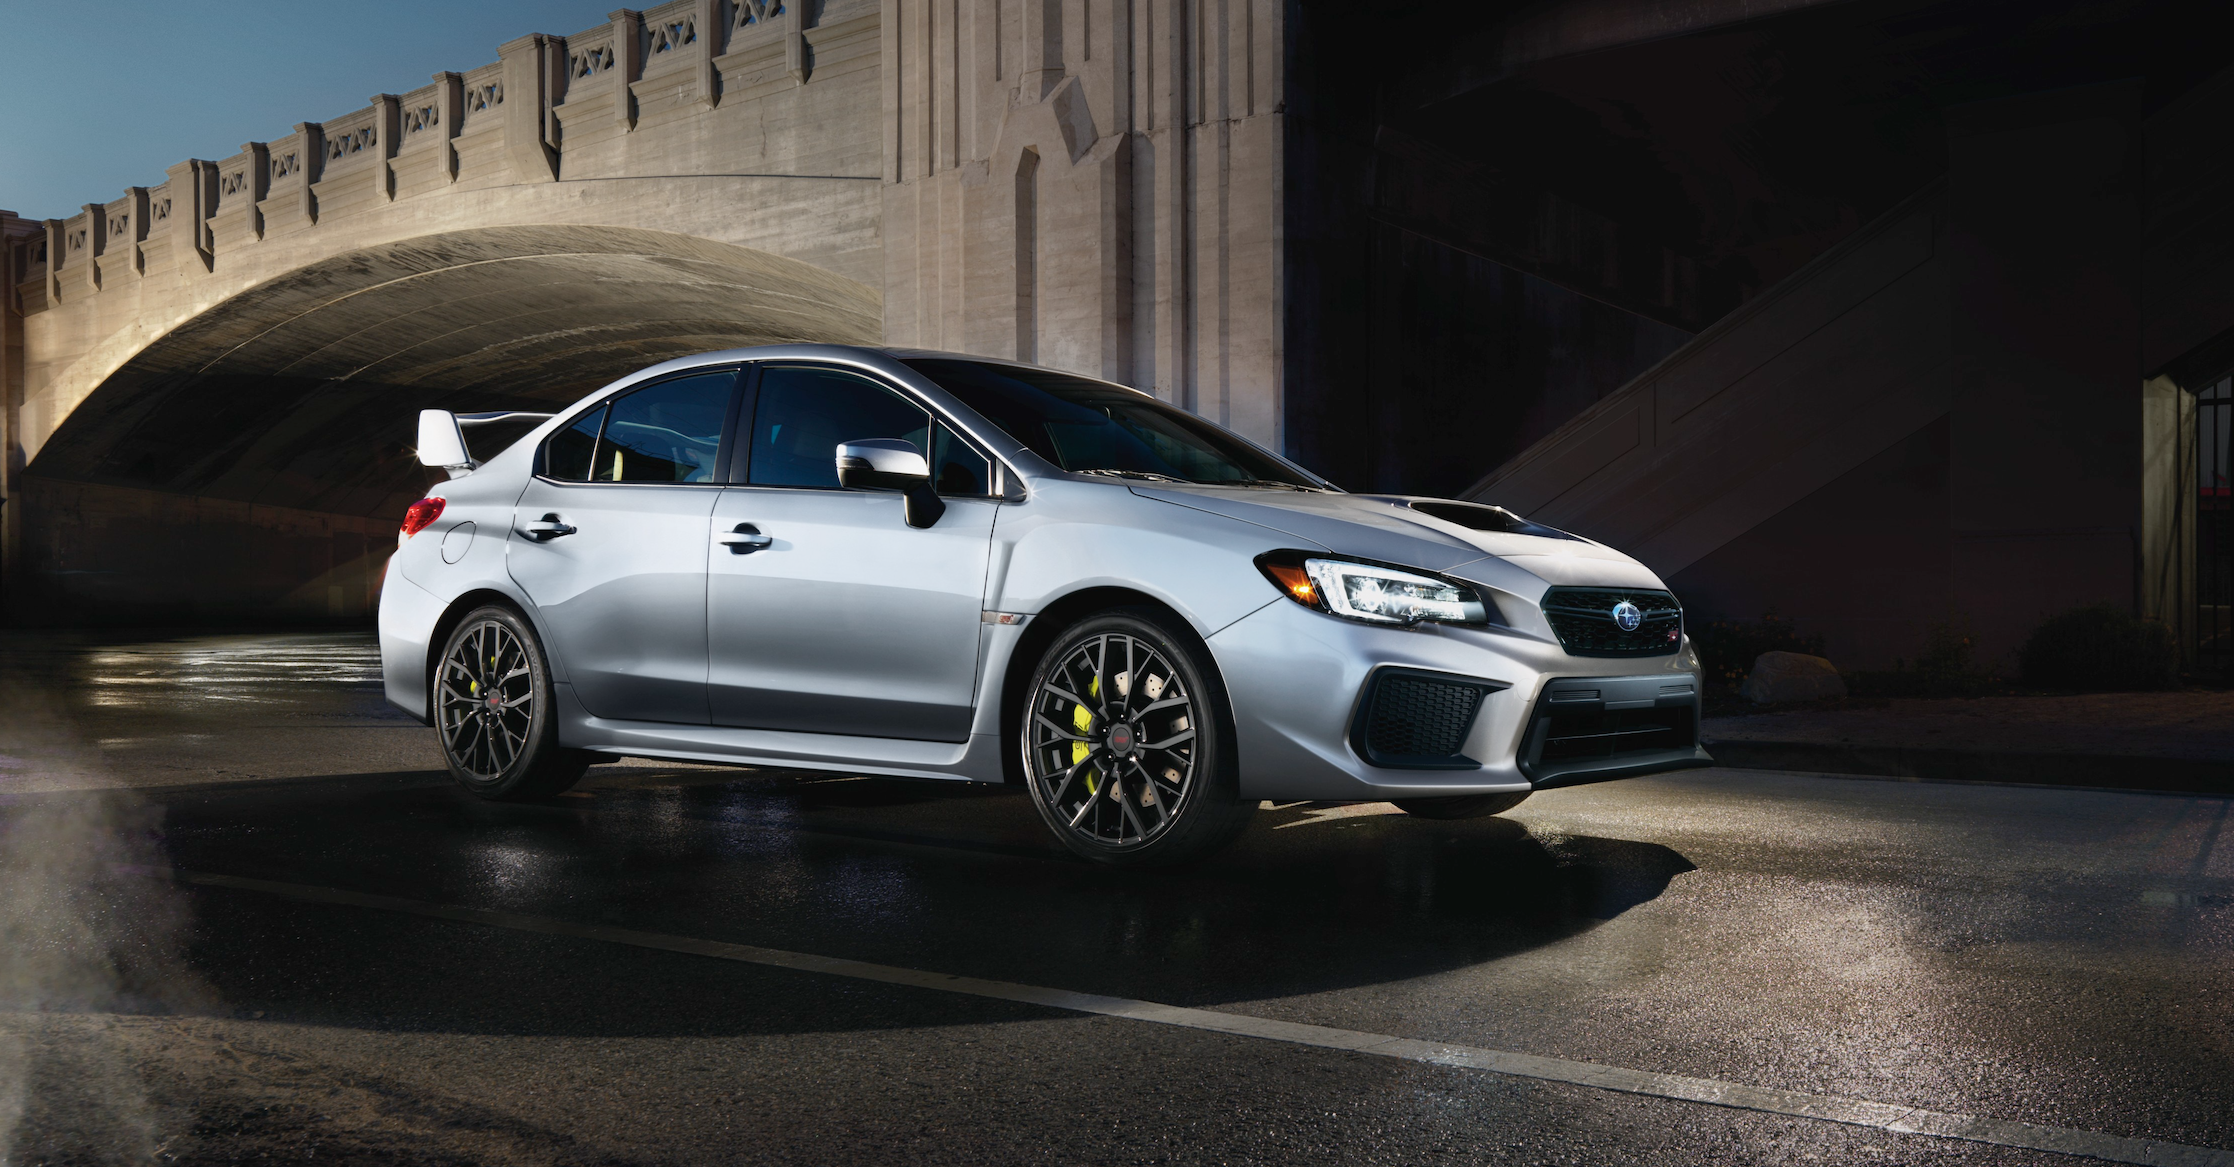 76 The Best When Do Subaru 2019 Come Out Exterior